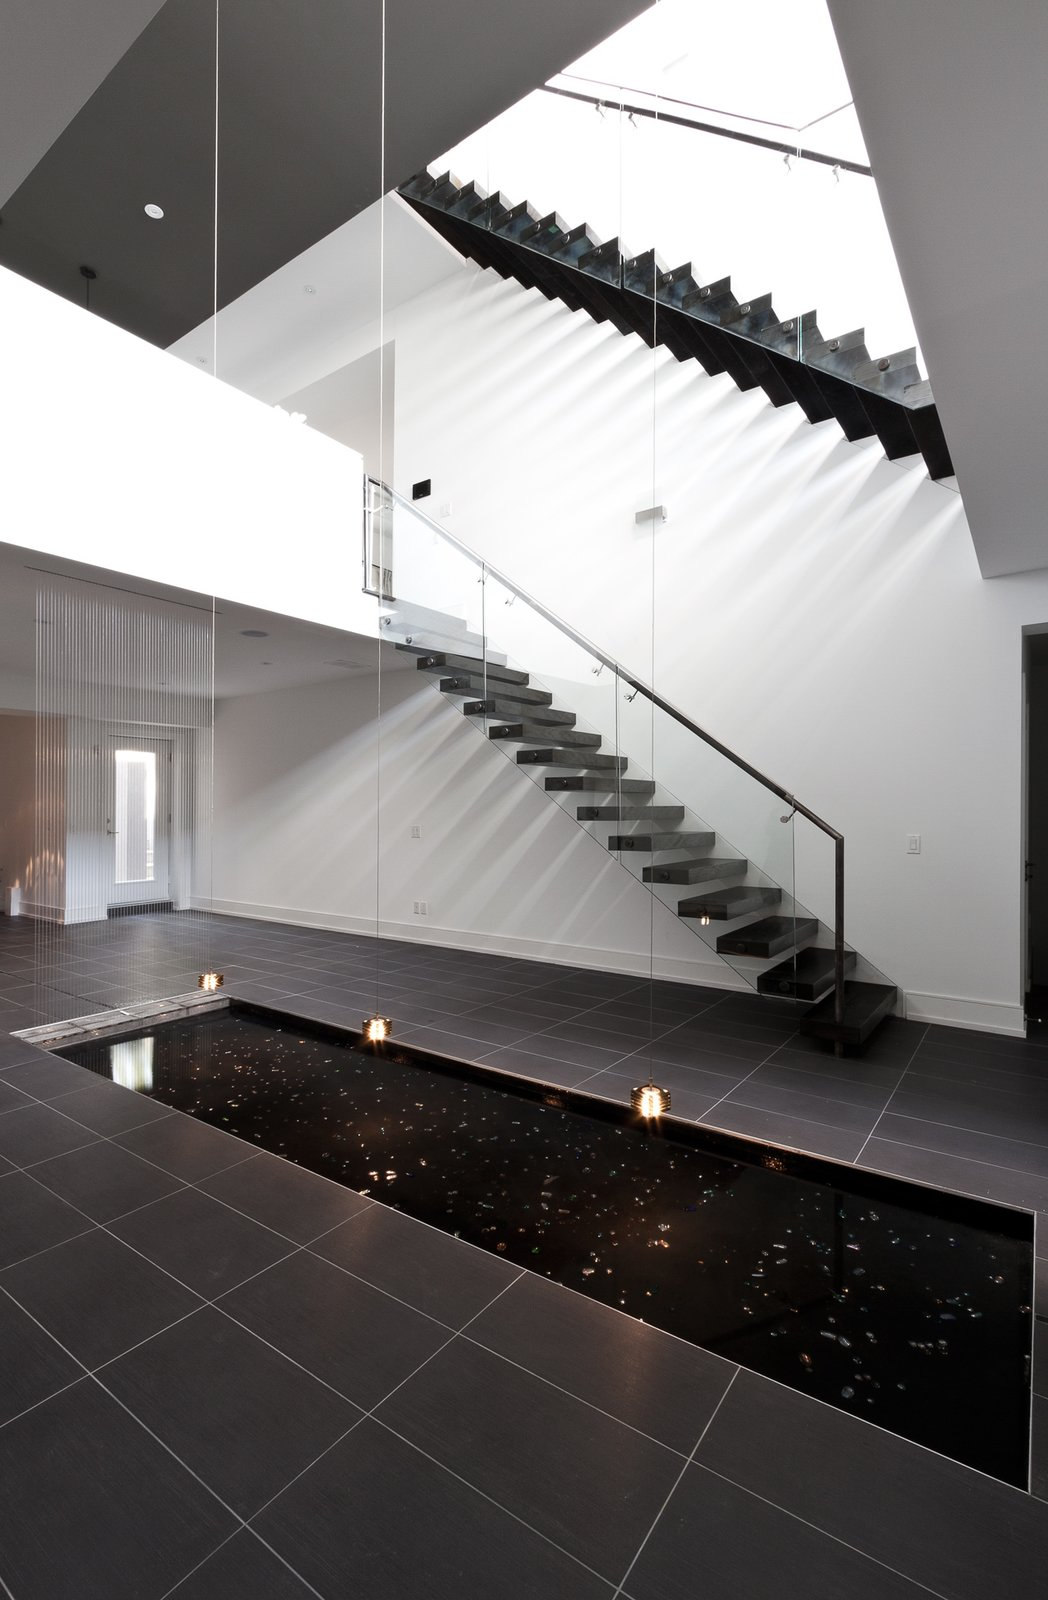 central void, staircase, reflection pool  5/6 House by rzlbd